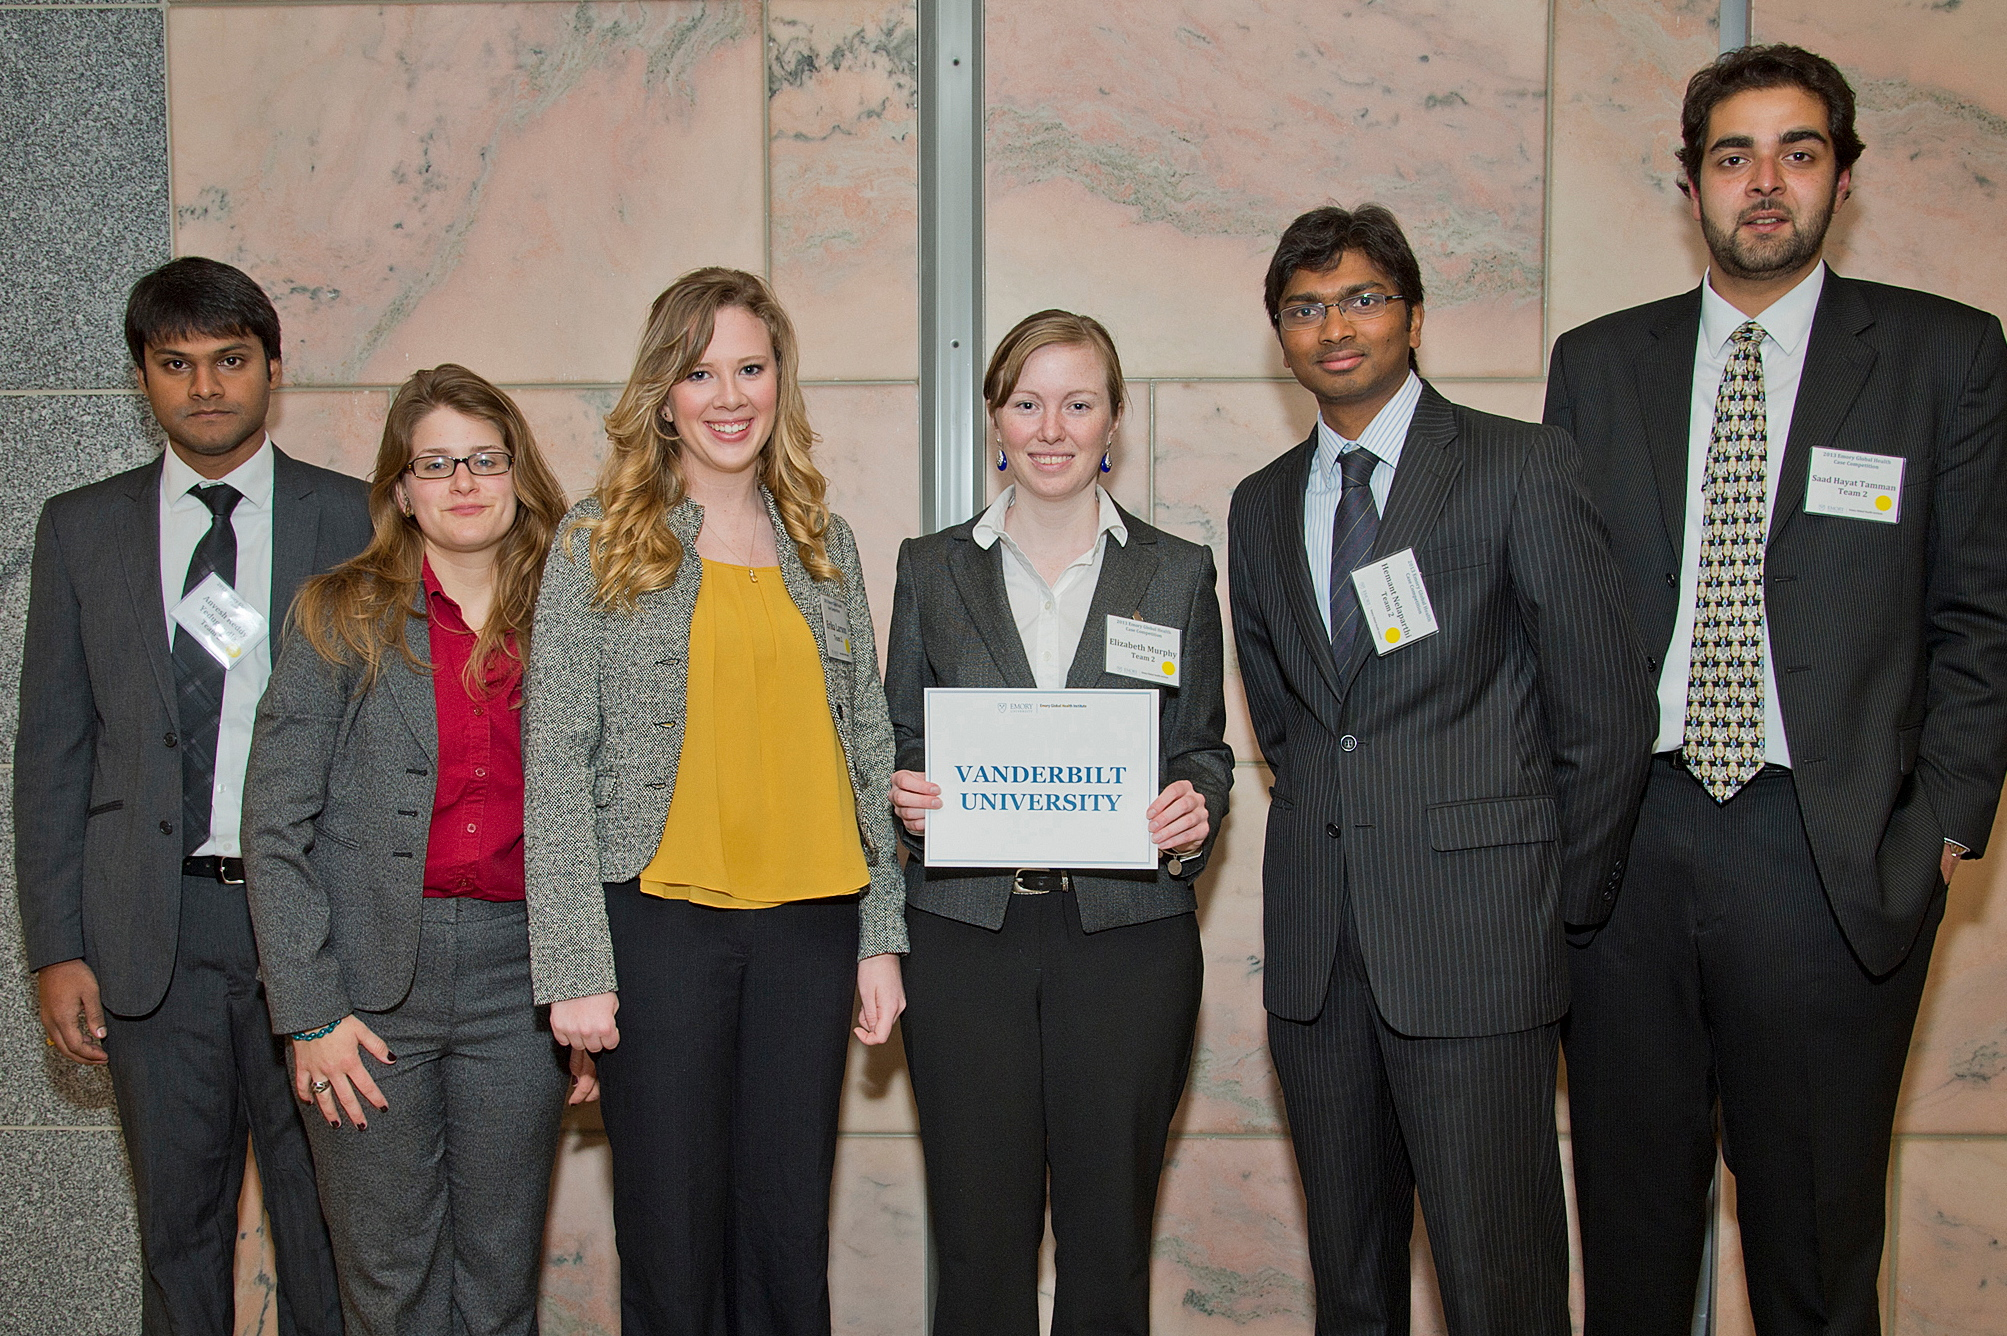 Vanderbilt's team at the Emory International Global Health Case Competition